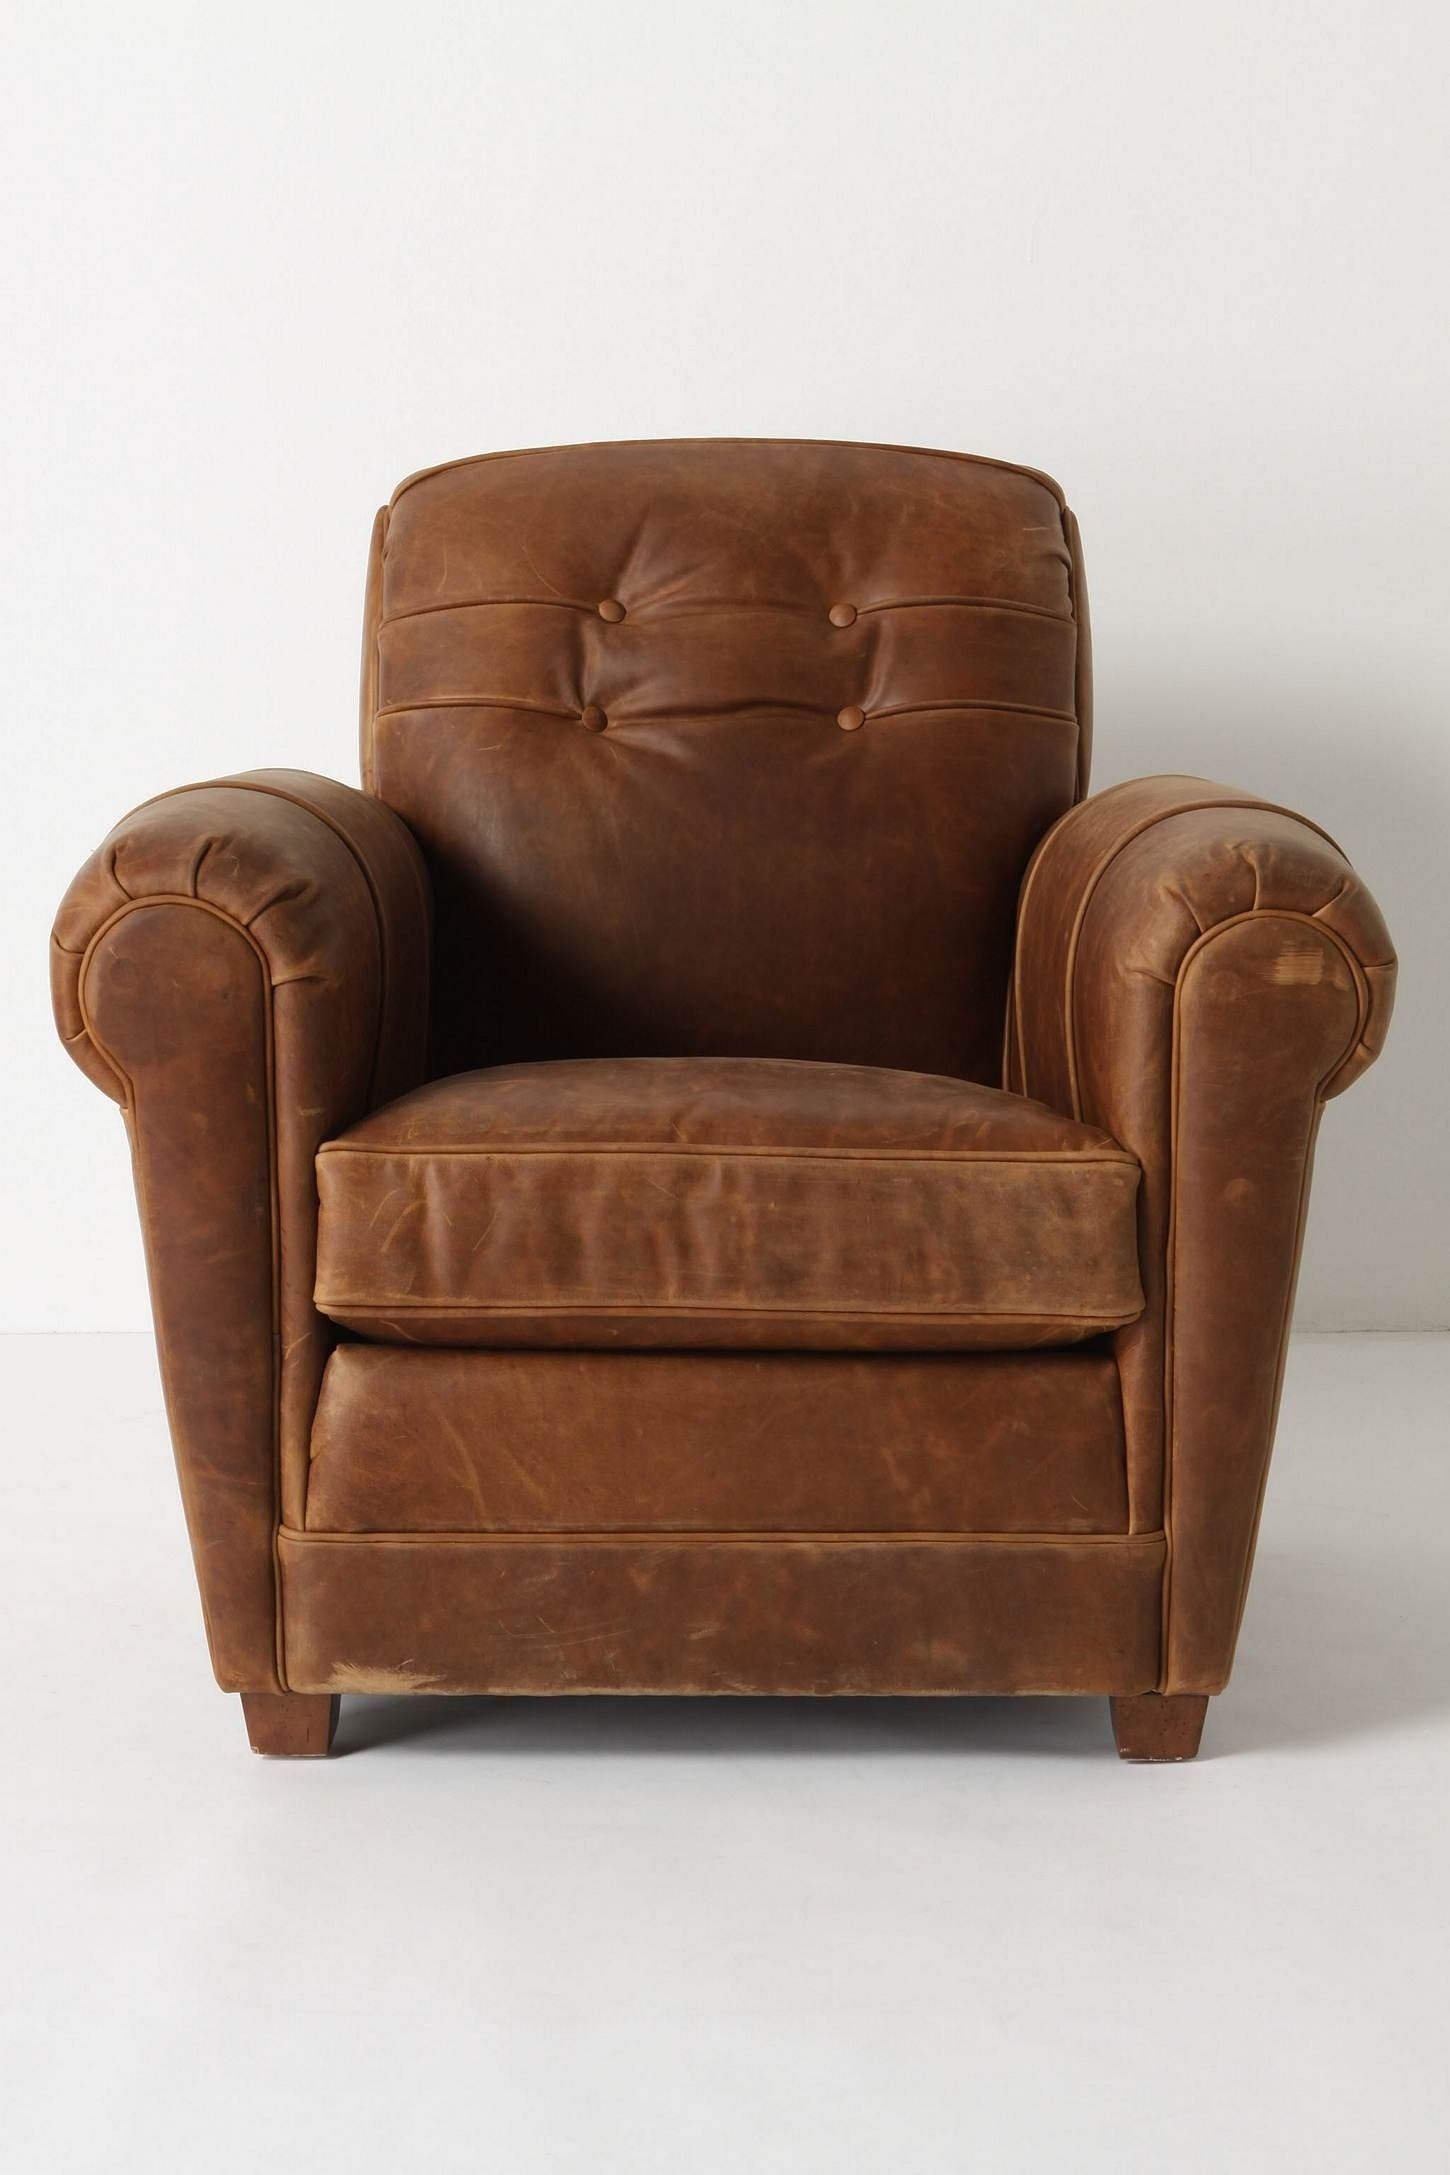 Picture of: Small Leather Armchairs Ideas On Foter